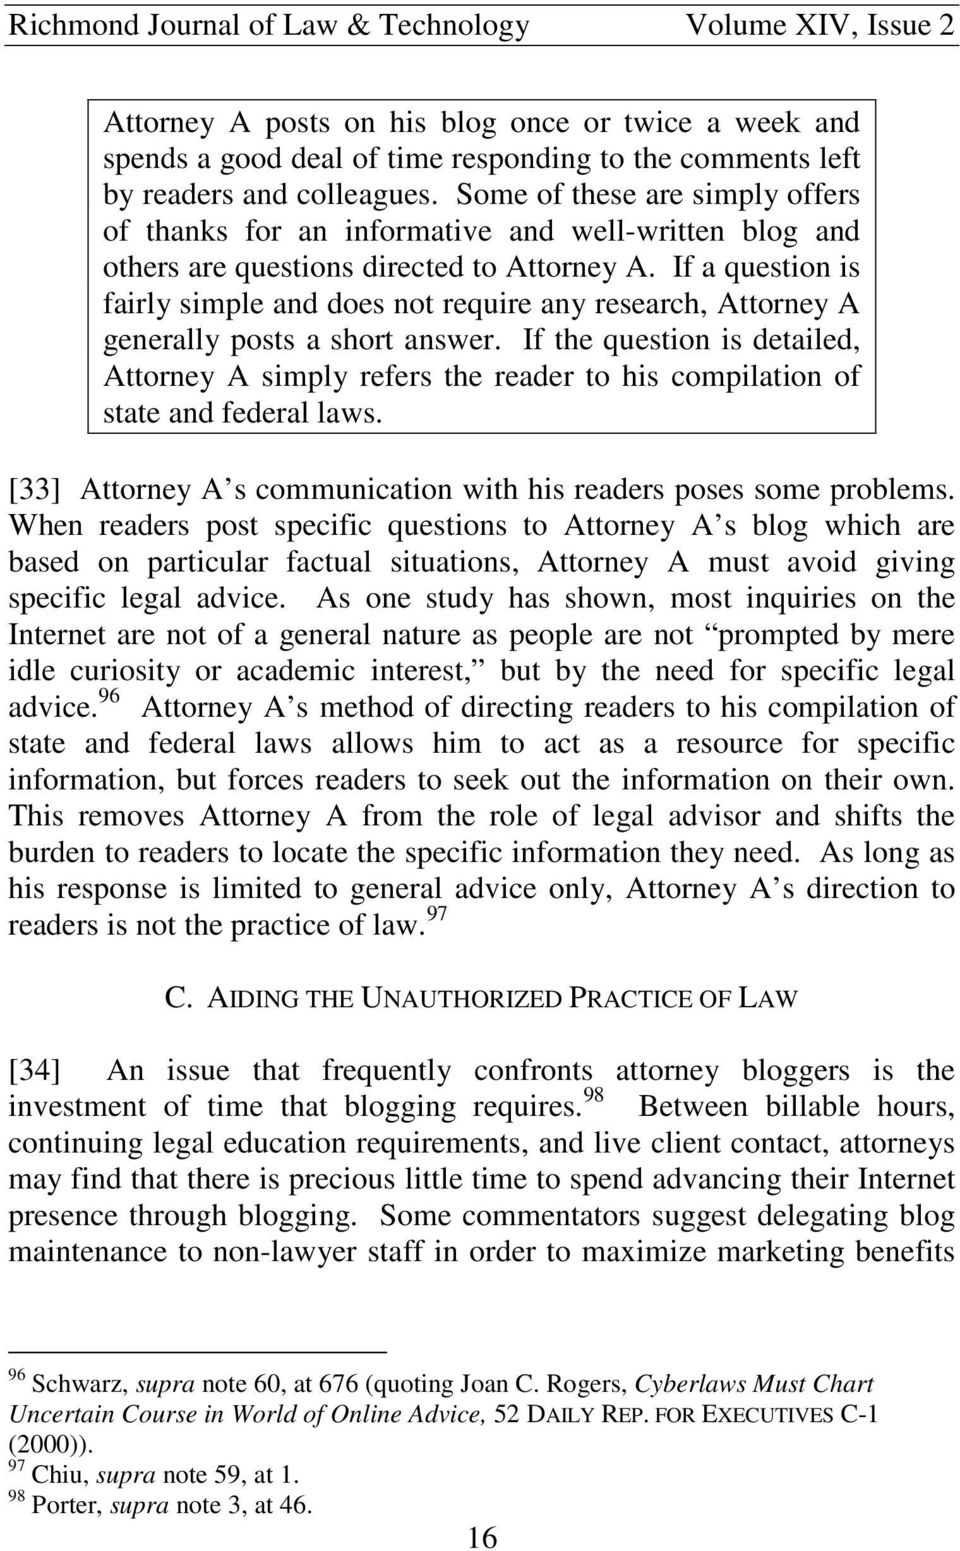 If a question is fairly simple and does not require any research, Attorney A generally posts a short answer.